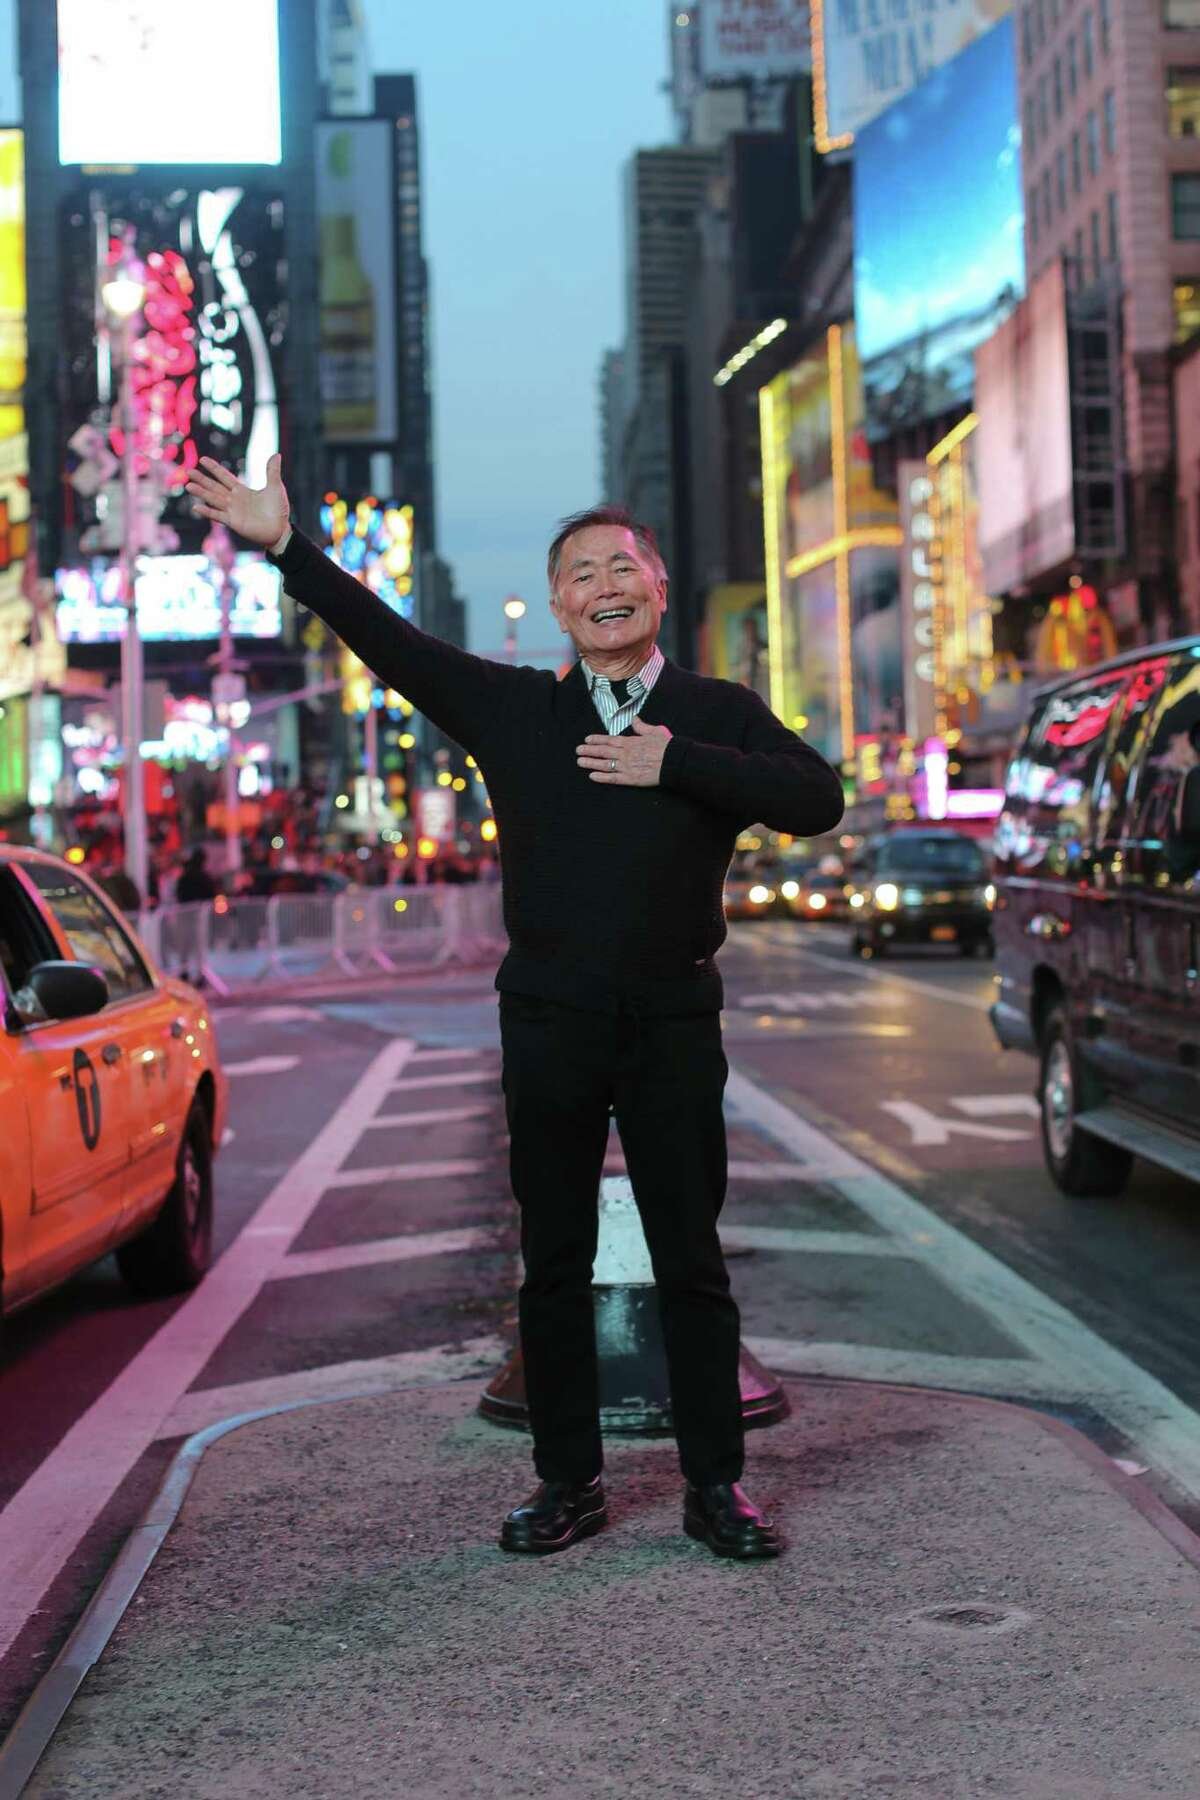 George Takei in Times Square, New York City.